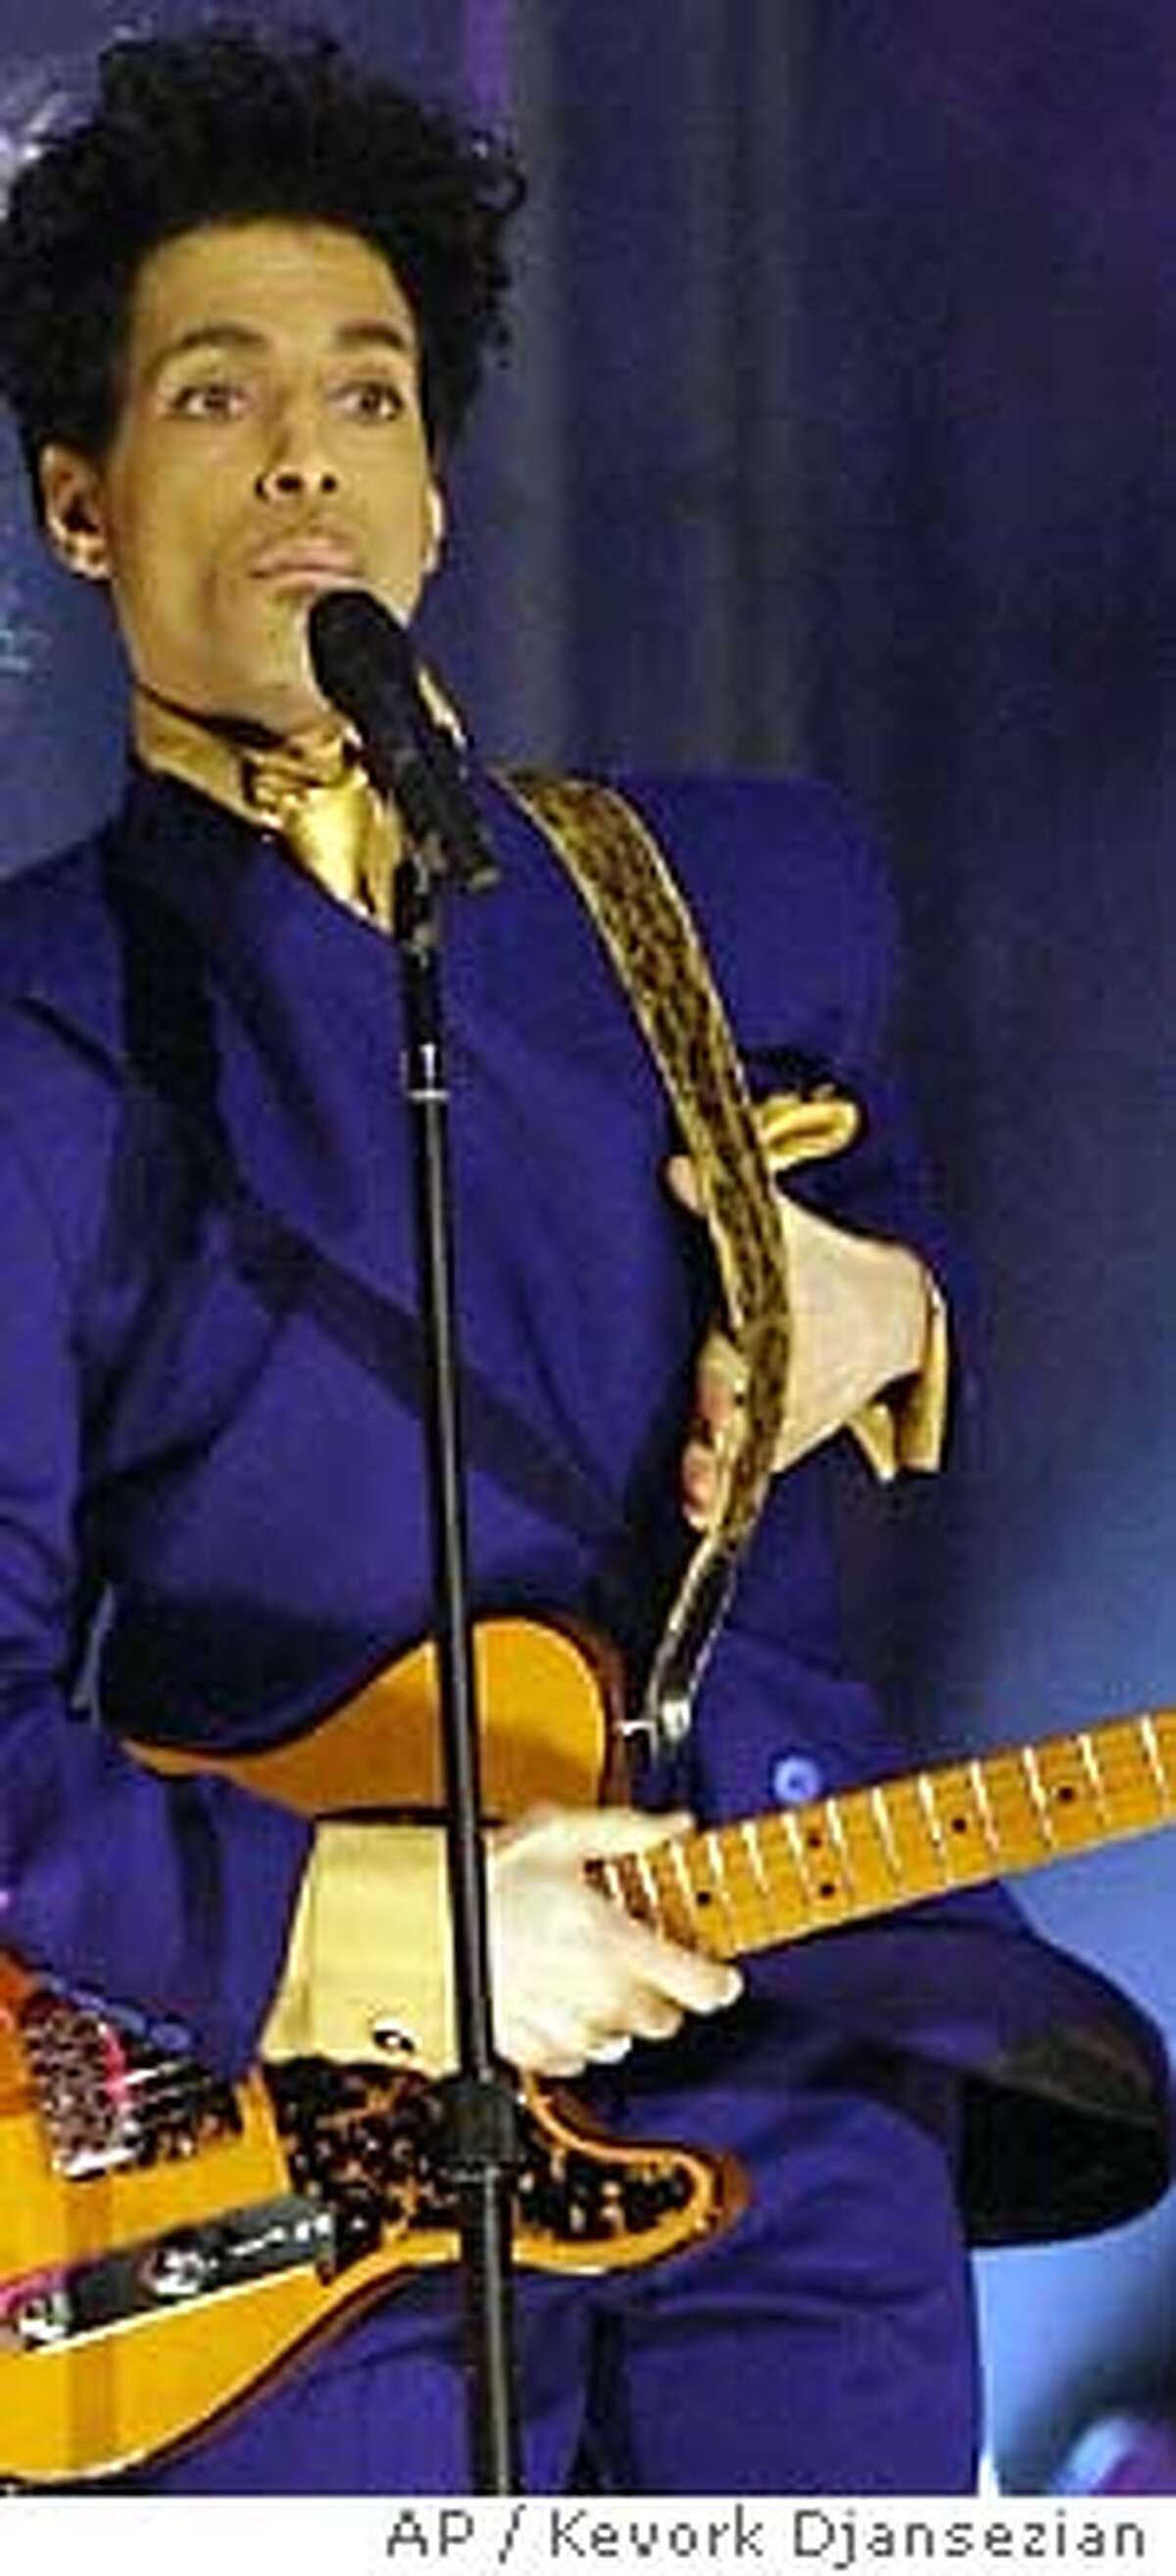 Beyonce, left, and Prince perform during the 46th Annual Grammy Awards, Sunday, Feb. 8, 2004, in Los Angeles. (AP Photo/Kevork Djansezian)